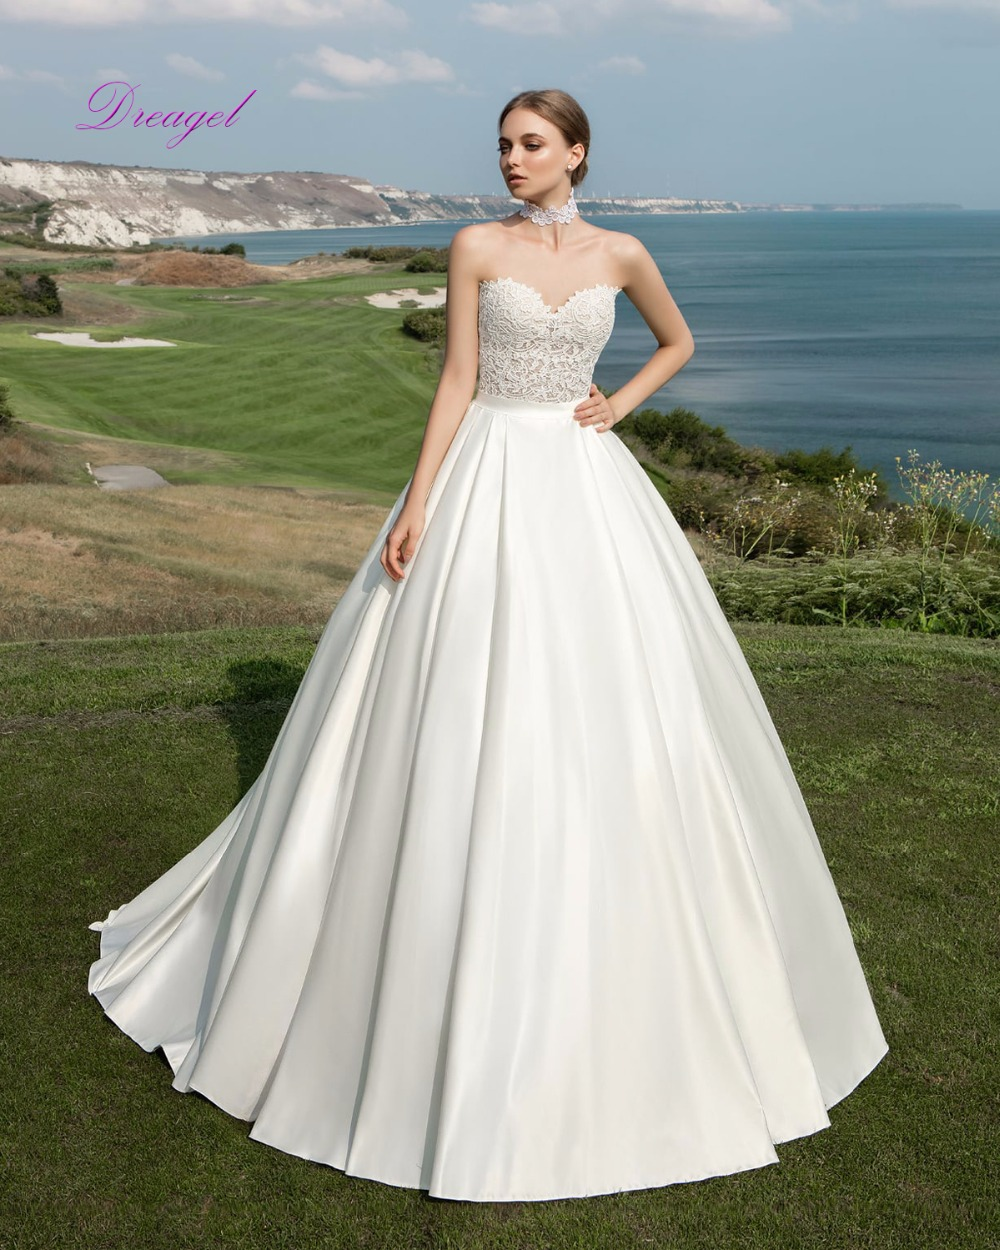 Princess Grace Wedding Dress. Amazing Princess Wedding Dress And ...